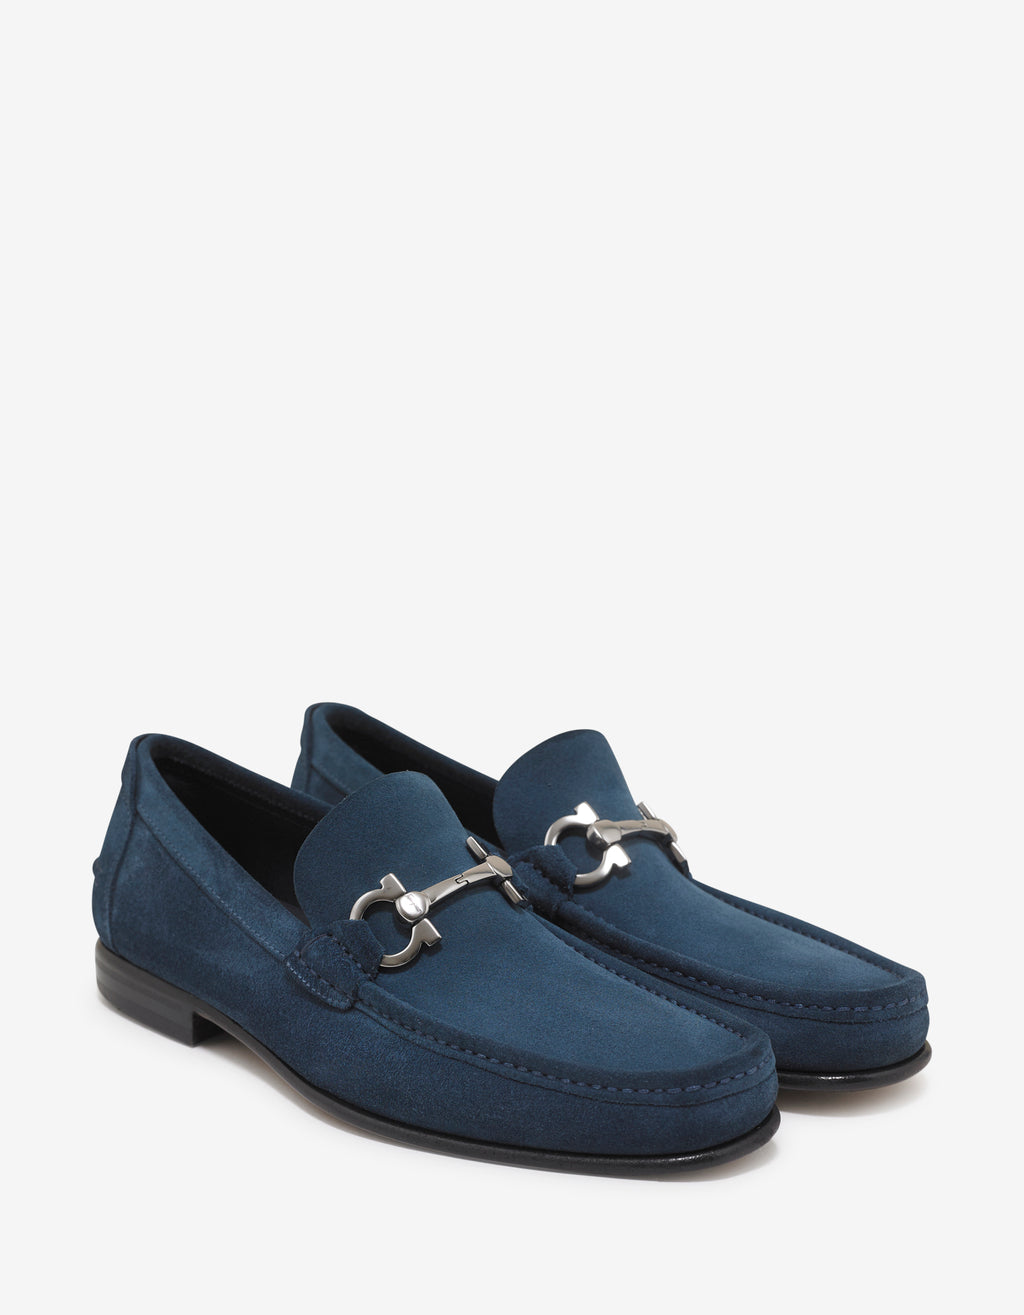 Petrol Blue Fiordi Suede Leather Loafers